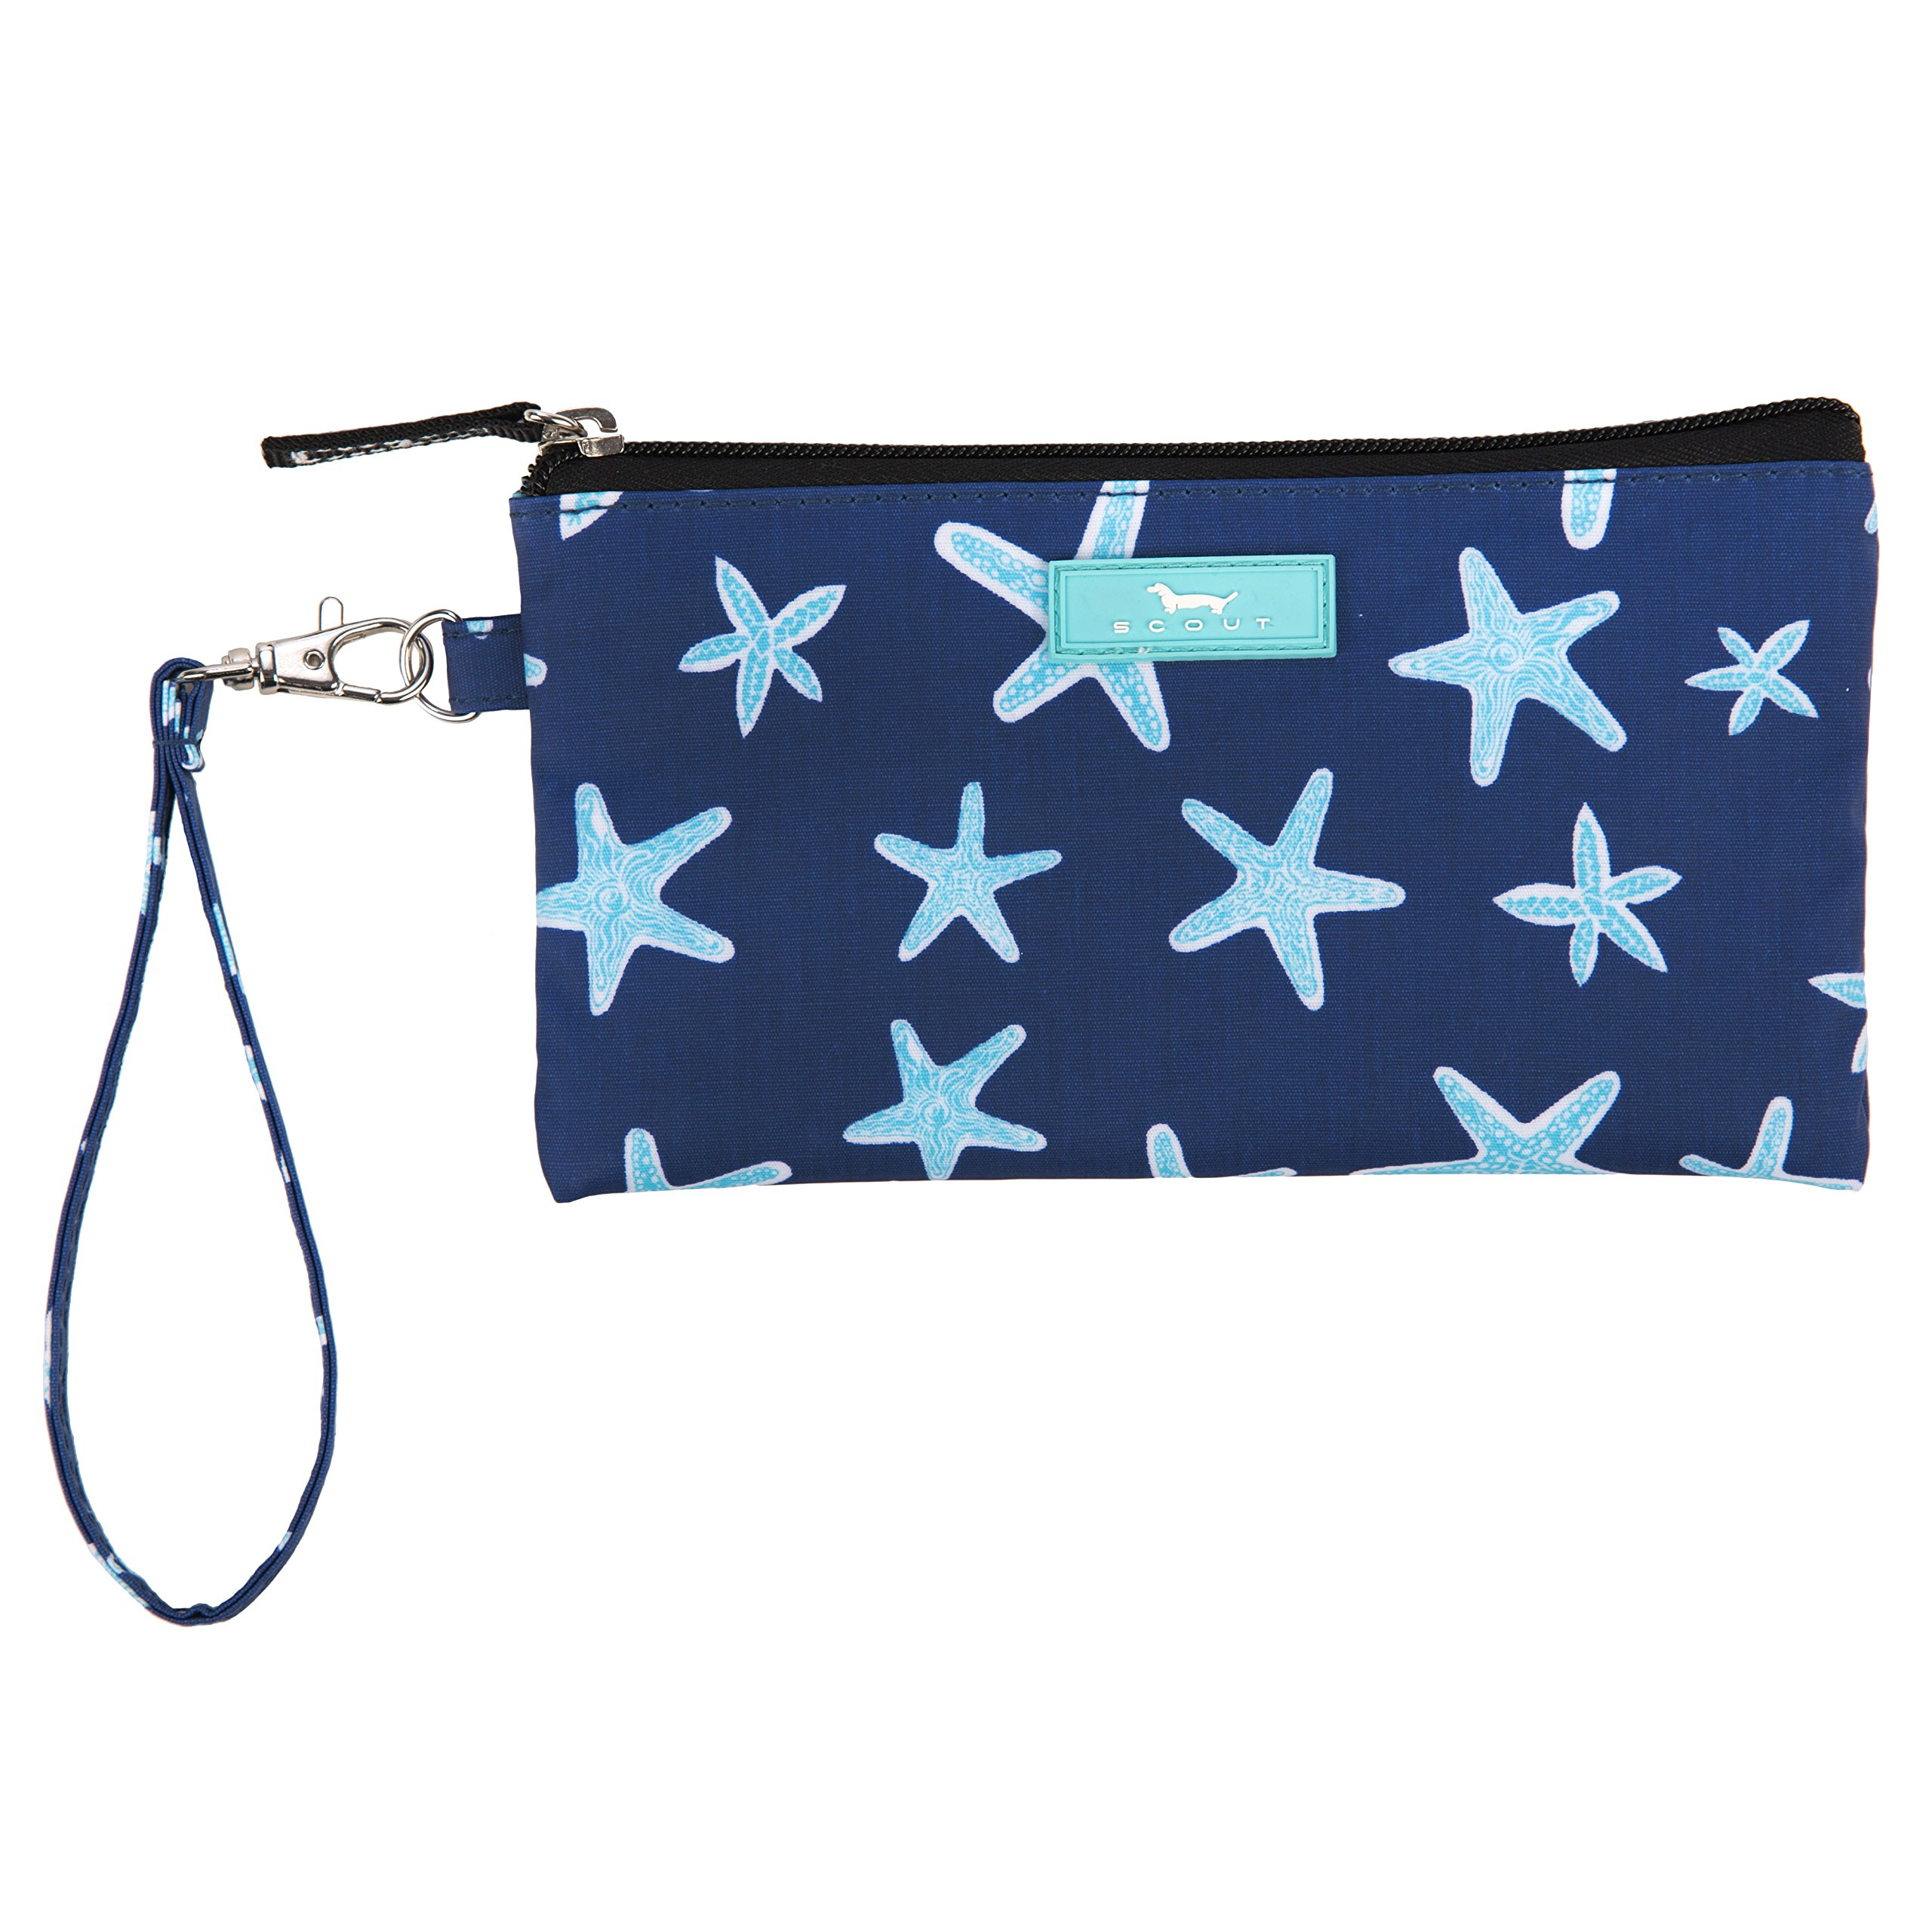 SCOUT Kate Wristlet, Essential Lightweight Clutch, Fits iPhone 6-8, Removable Strap, Water Resistant, Zips Closed, Fish Upon a Star